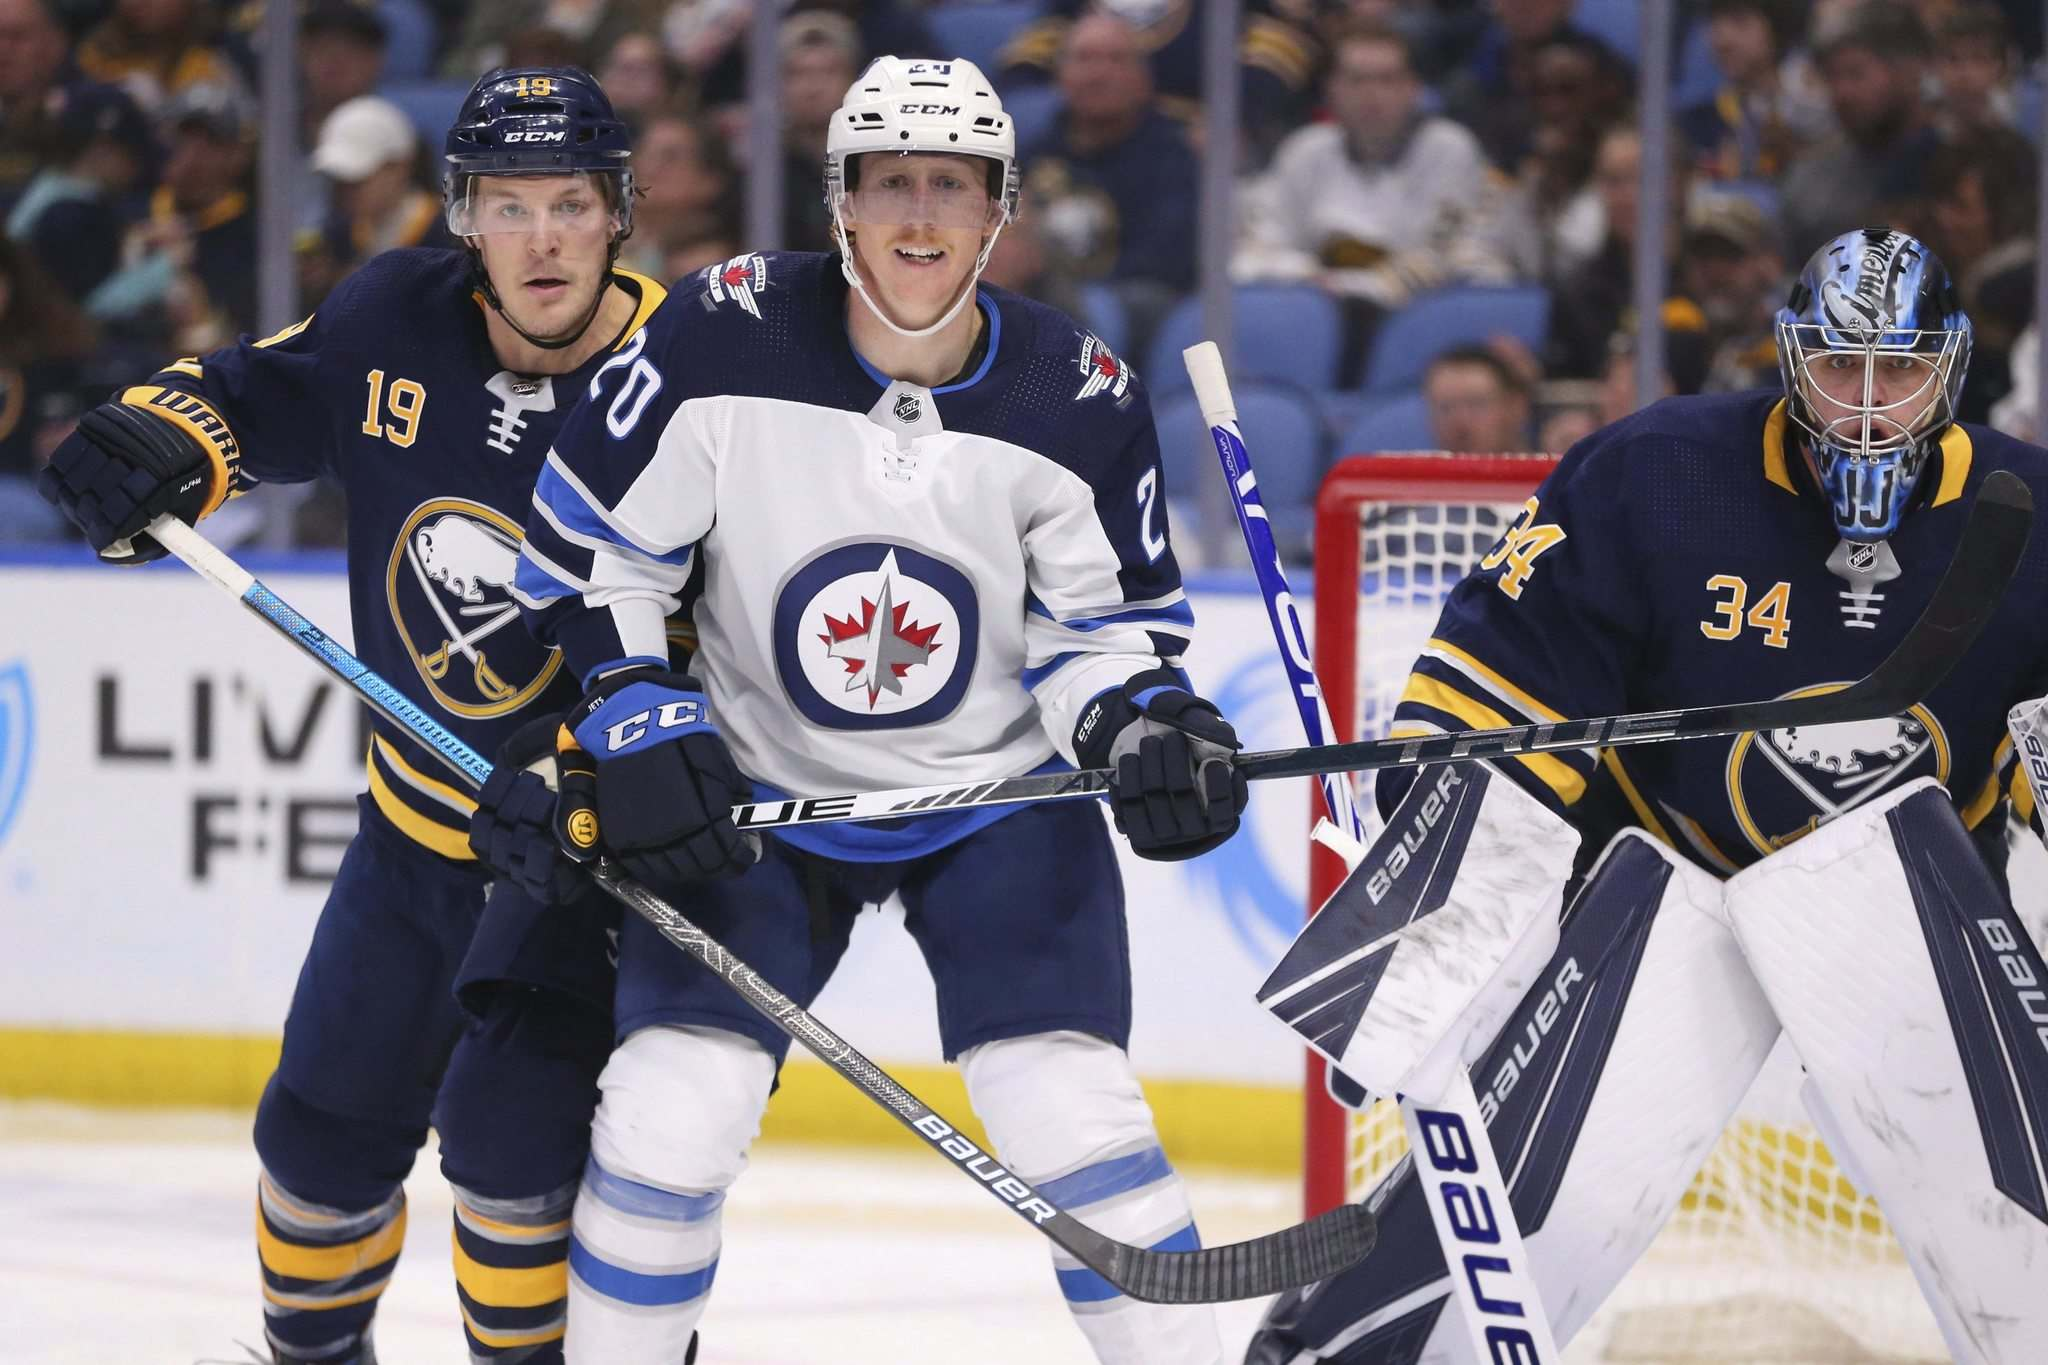 Jeffrey T. Barnes / The Associated Press</p><p>Buffalo Sabres defenseman Jake McCabe (19) and Winnipeg Jets forward Cody Eakin (20) battle for position during the second period of an NHL hockey game Sunday, Feb. 23, 2020, in Buffalo, N.Y.</p>